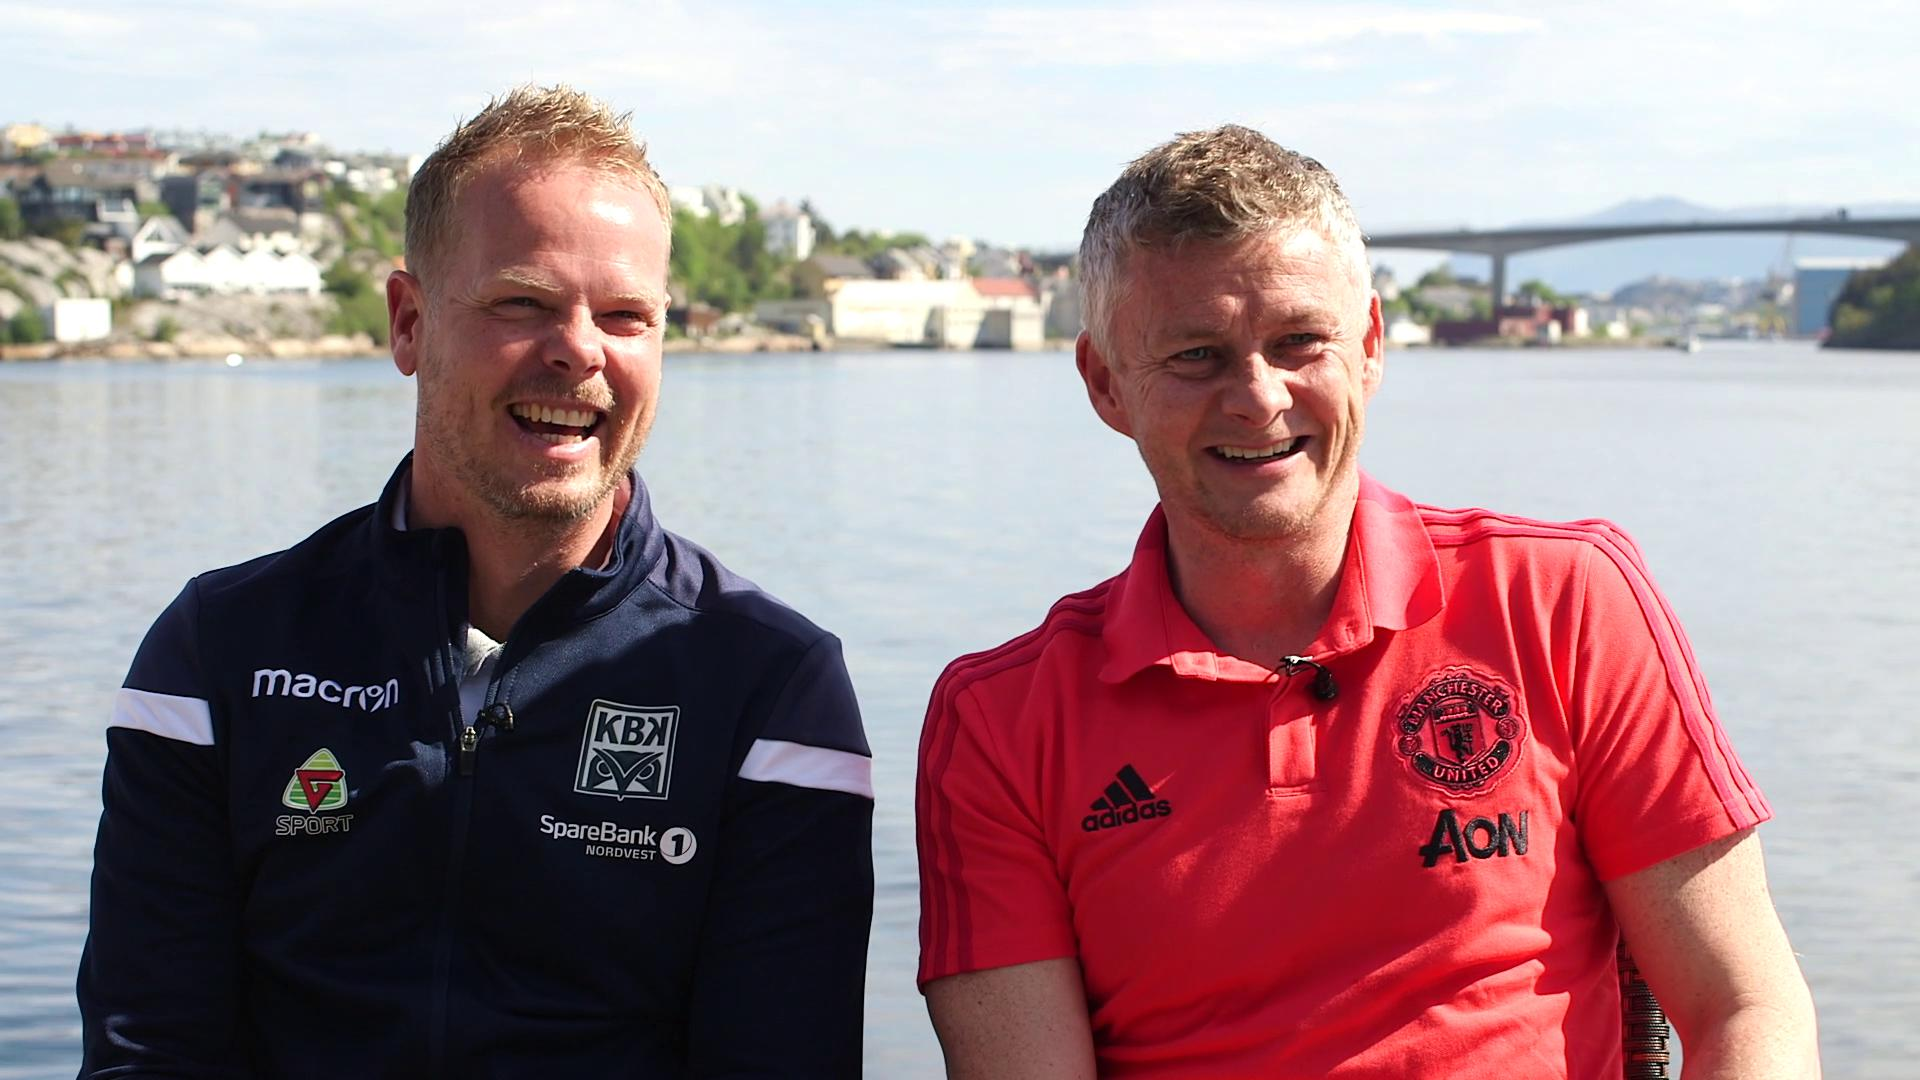 Christian Michelsen and Ole Gunnar Solskjaer